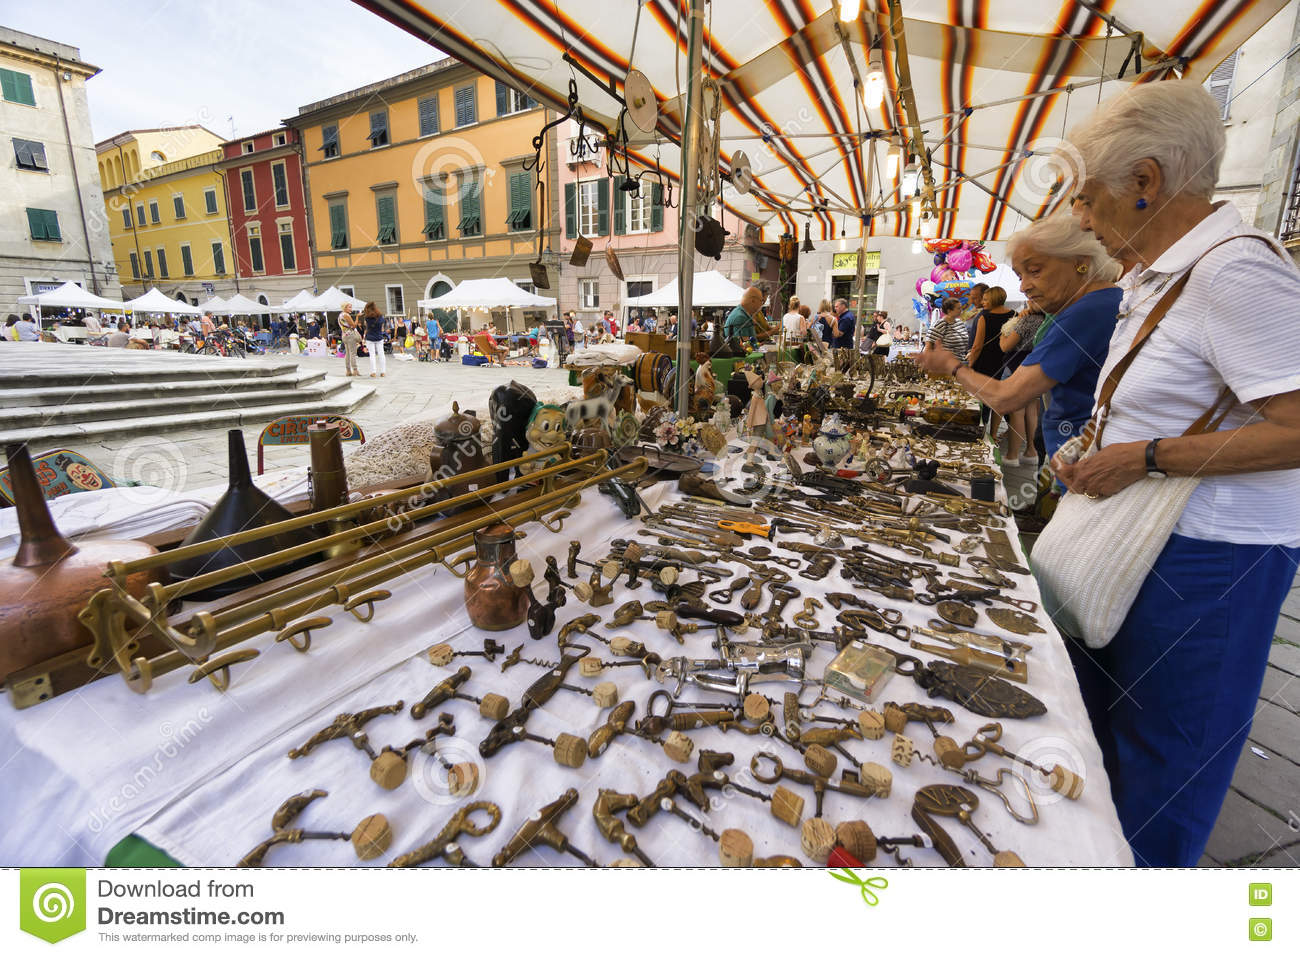 Market of antique and vintage objects in Sarzana, Liguria, Italy